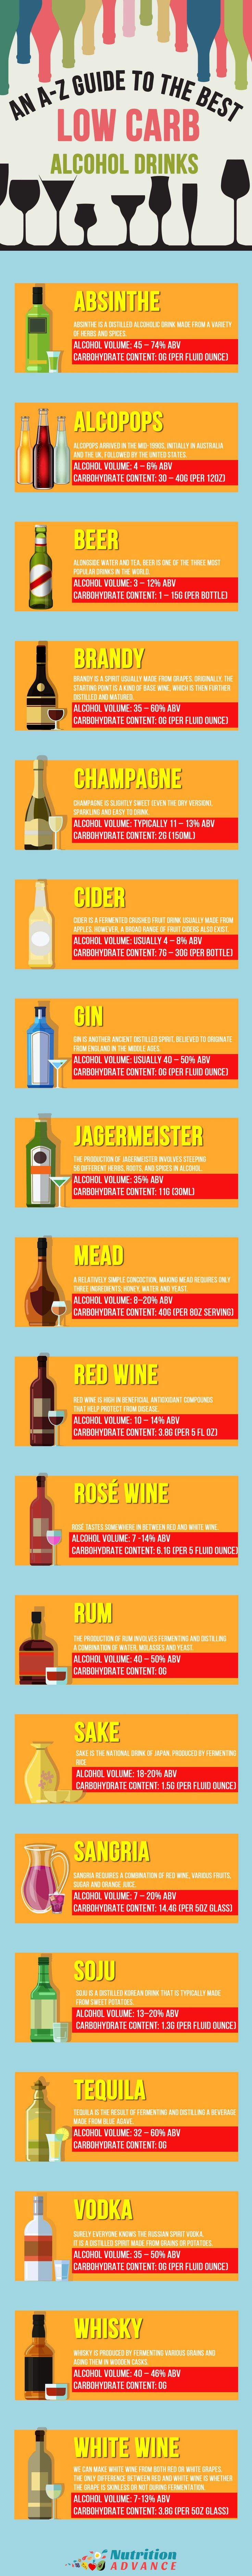 Low Carb Alcohol - Here are 20 popular alcoholic drinks with their carbohydrate content and alcohol volume. Which ones are most suitable for LCHF and keto diets? For more details, recipes, and general trivia see: http://nutritionadvance.com/best-alcohol-low-carb-diet